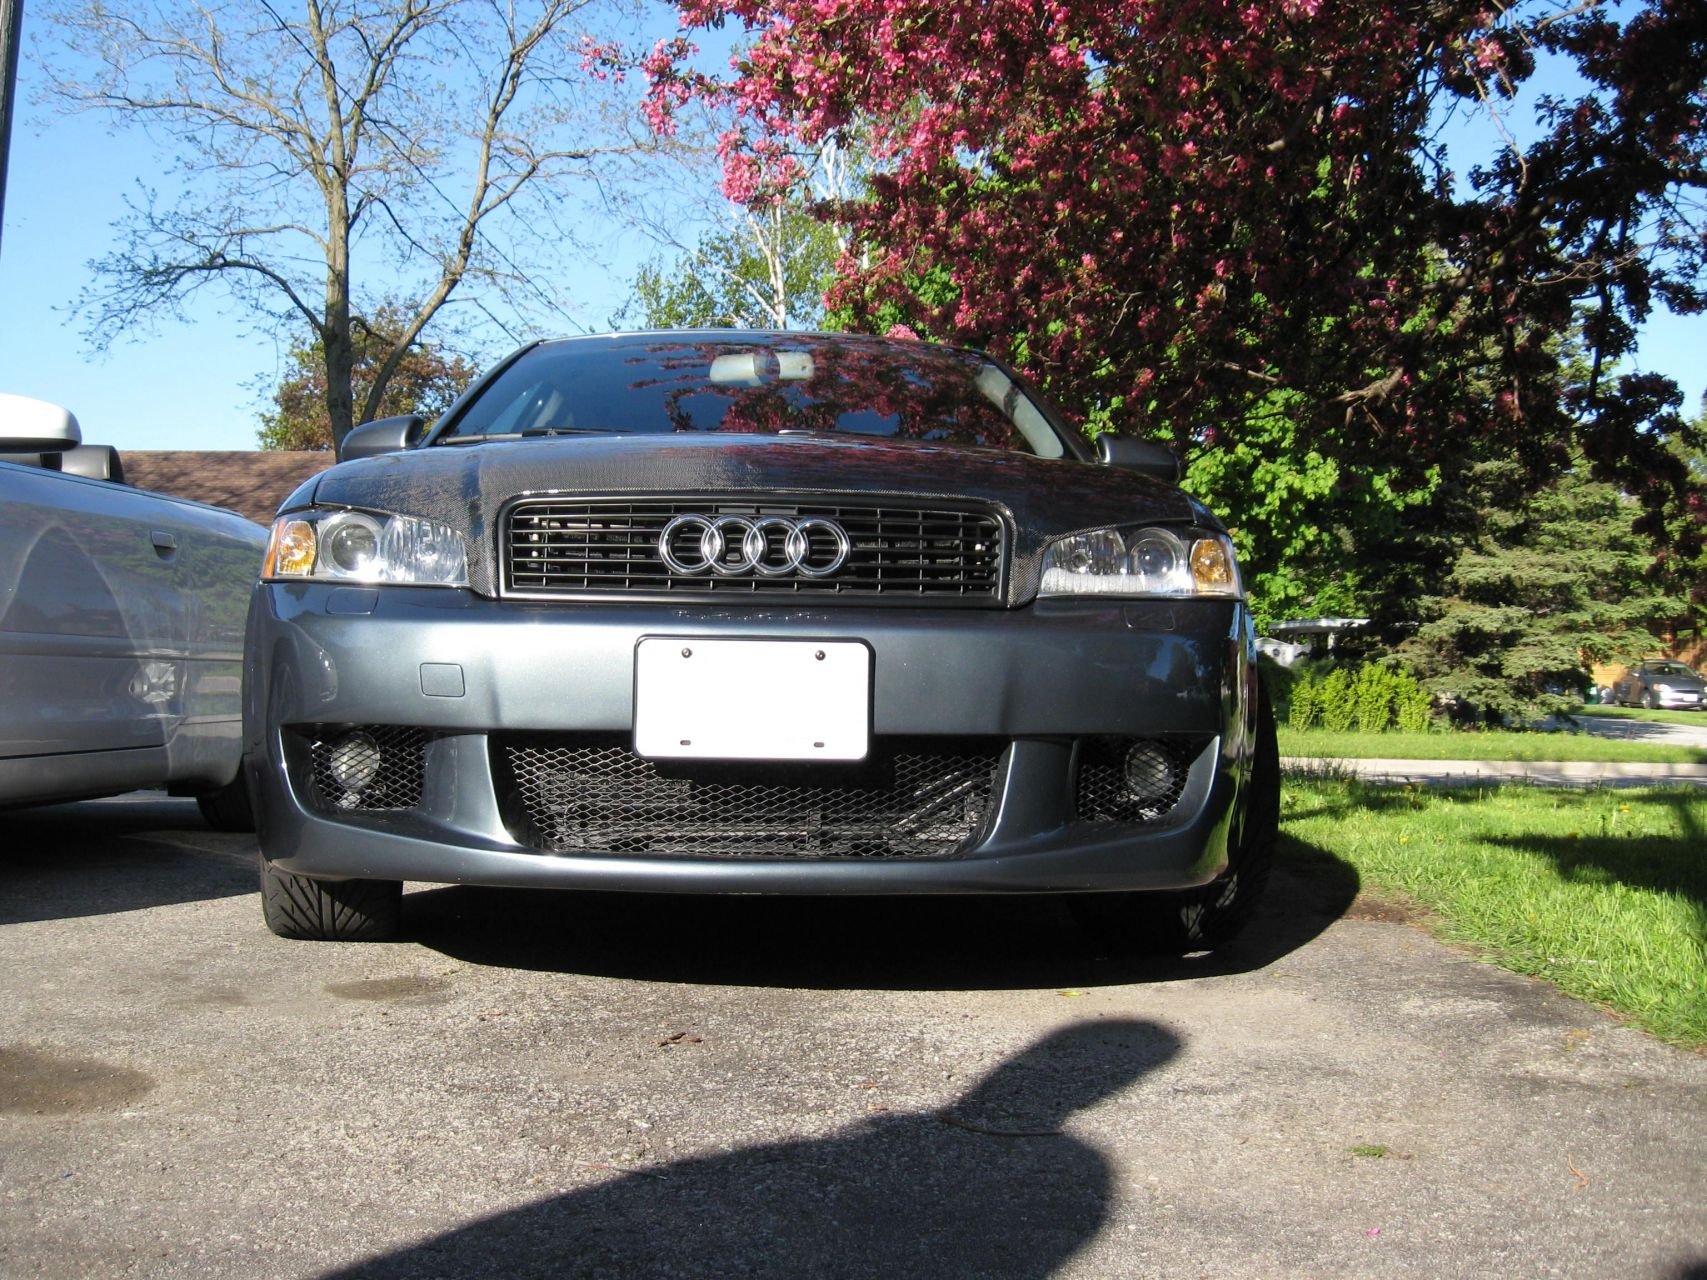 for sale 2005 audi a4 3 0l v6 quattro ultrasport. Black Bedroom Furniture Sets. Home Design Ideas